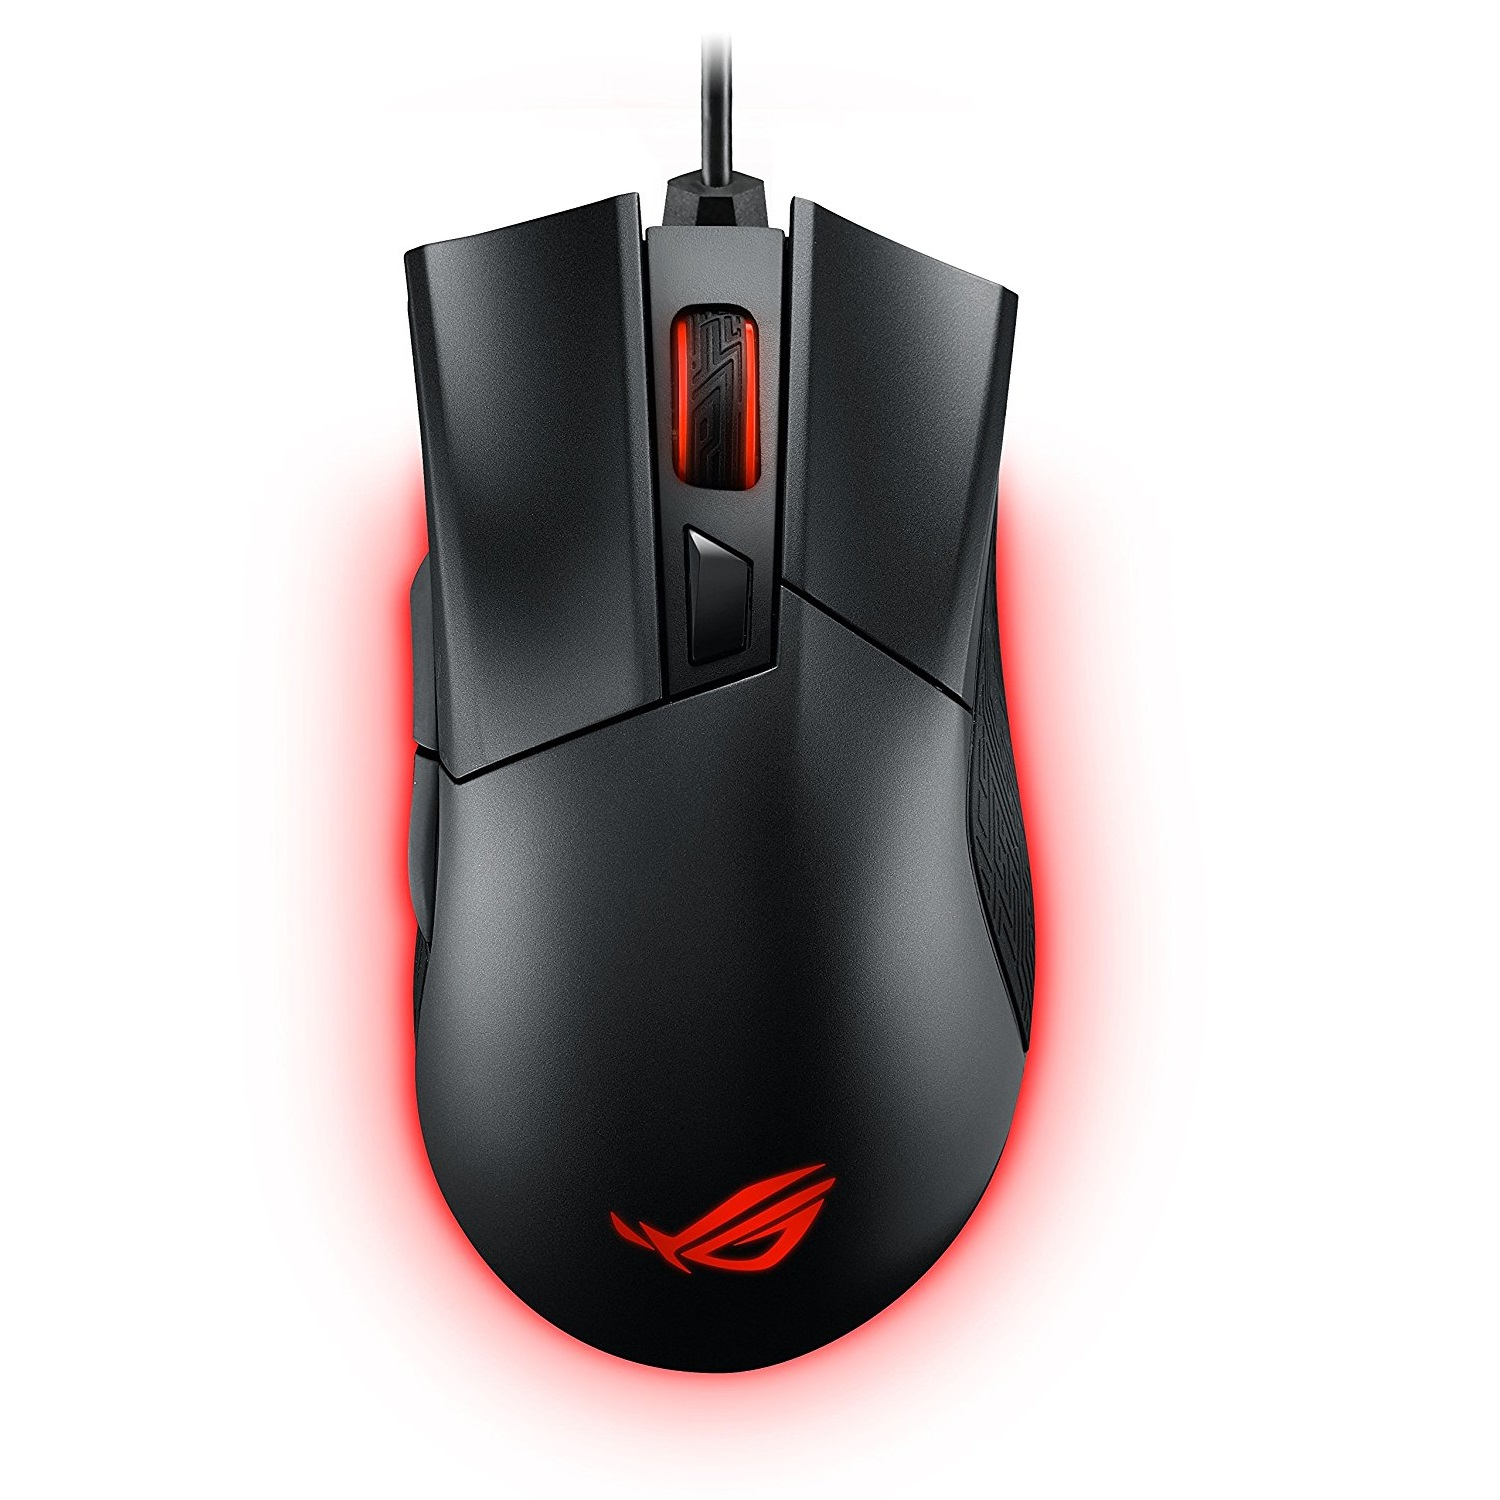 ASUS-ROG-Gladius-II-2-Aura-Sync-Wired-PNK-Wireless-Gaming-Mouse-All-Models-AW Indexbild 11